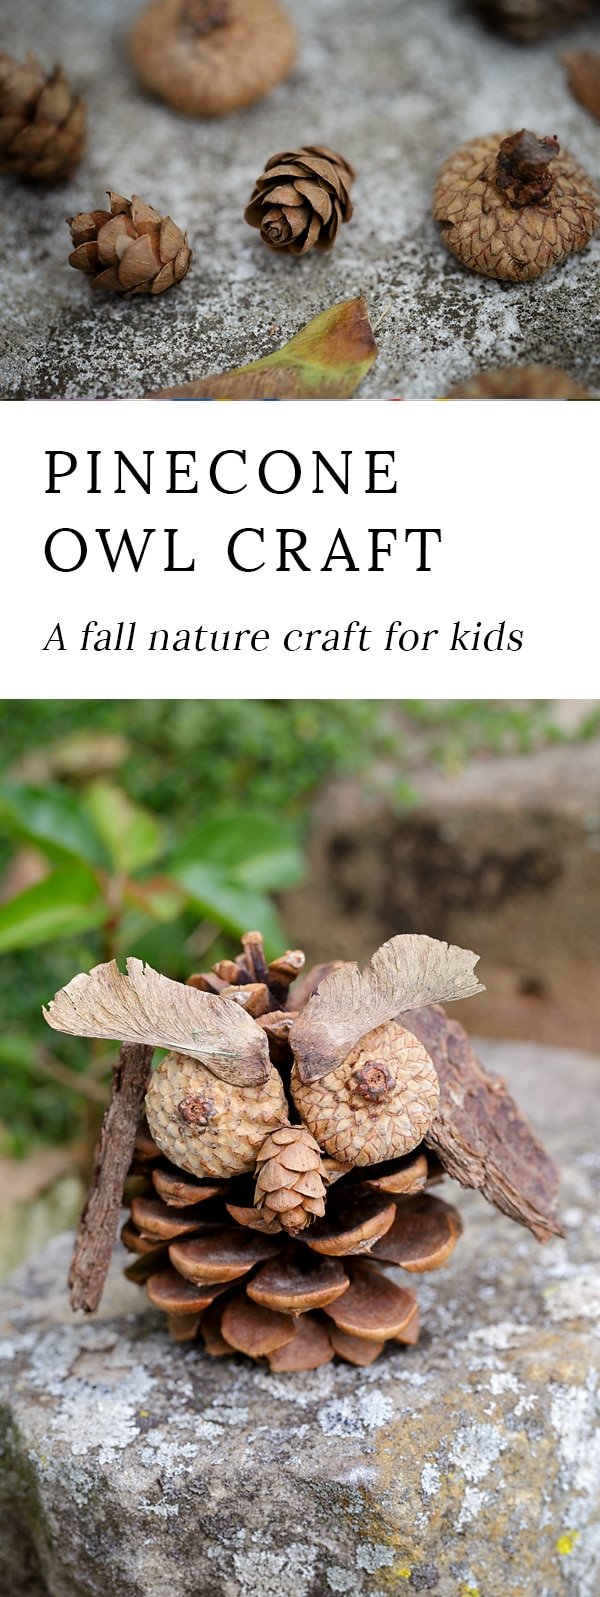 Fall is the perfect season for crafting! Kids will love being creative with acorns, pinecones, twigs, bark, and seeds to create one-of-a-kind Pinecone Owls.